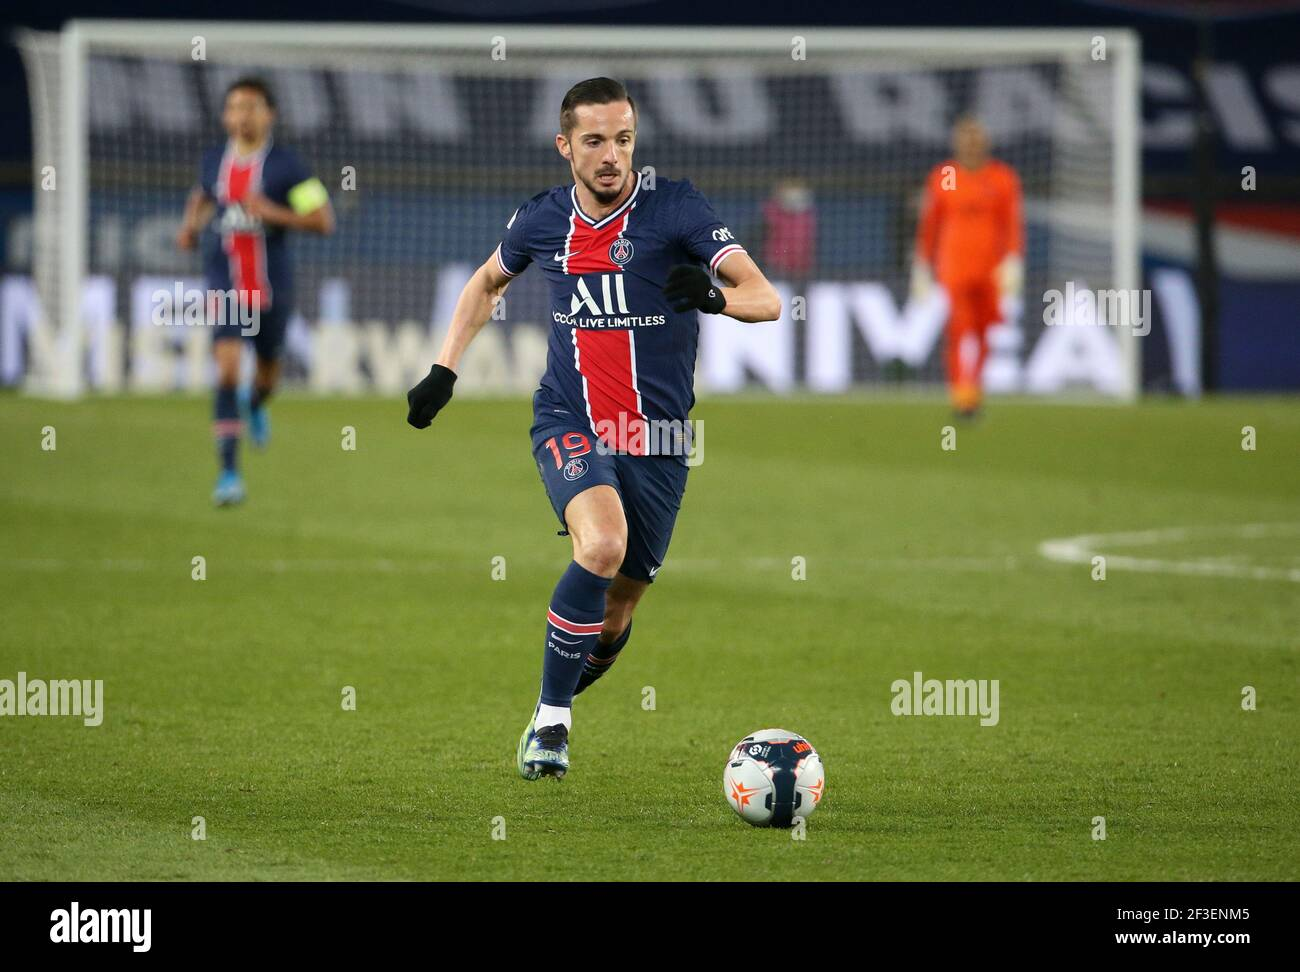 Pablo Sarabia of PSG during the French championship Ligue 1 football match  between Paris Saint-Germain and FC Nantes on March 14, 2021 at Parc des  Princes stadium in Paris, France - Photo